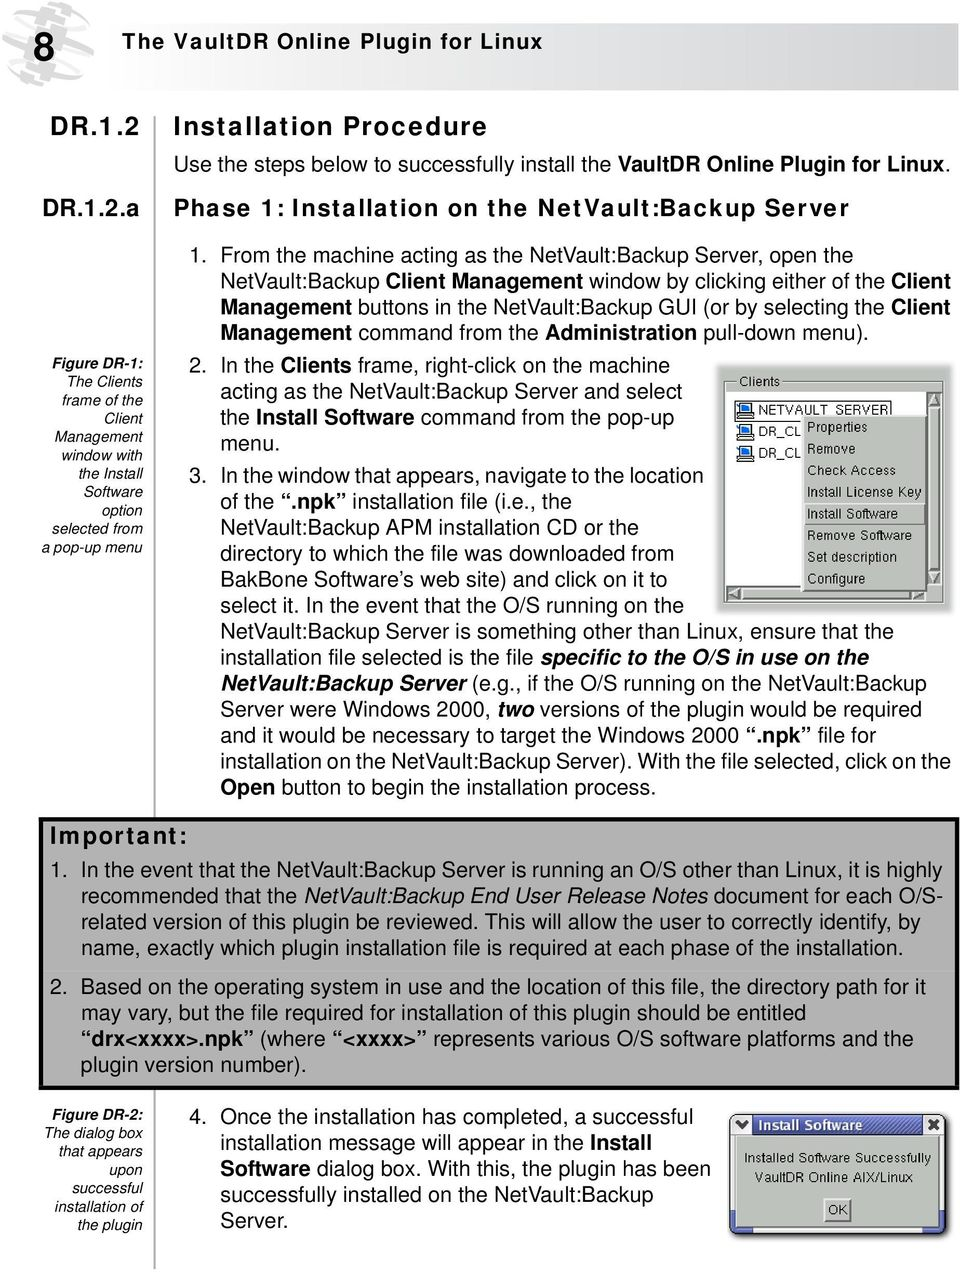 a Figure DR-1: The Clients frame of the Client Management window with the Install Software option selected from a pop-up menu Installation Procedure Use the steps below to successfully install the